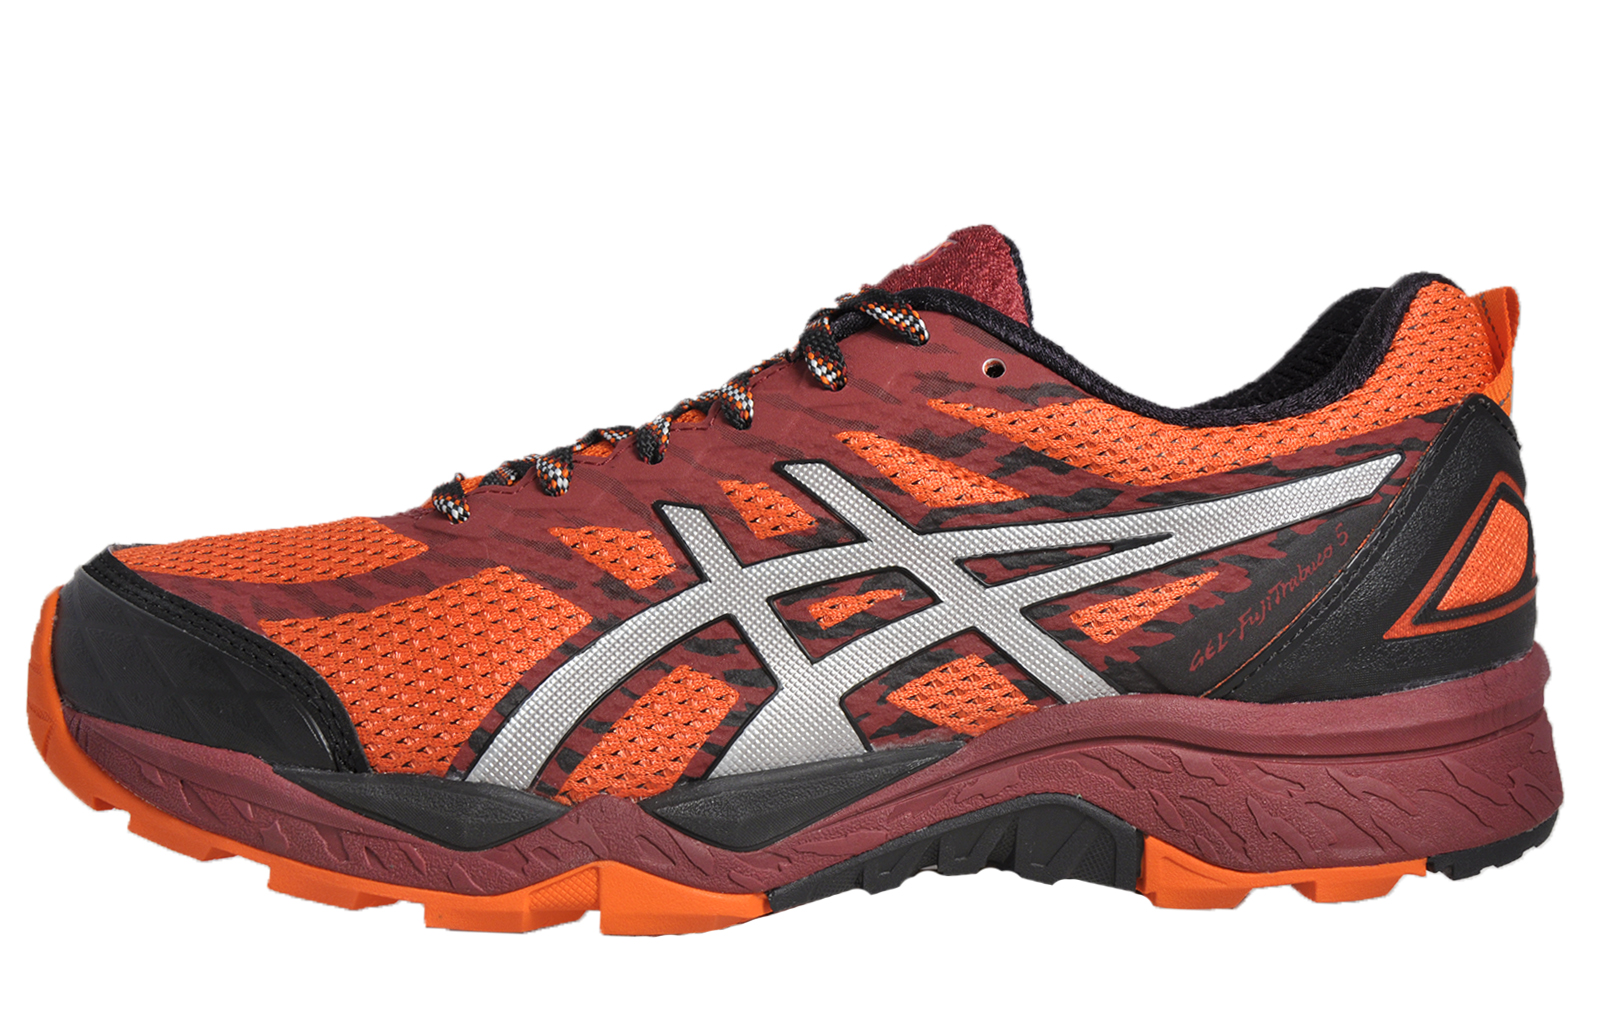 asics gel fuji trabuco 5 mens all terrain running outdoor trail trainers flame o ebay. Black Bedroom Furniture Sets. Home Design Ideas